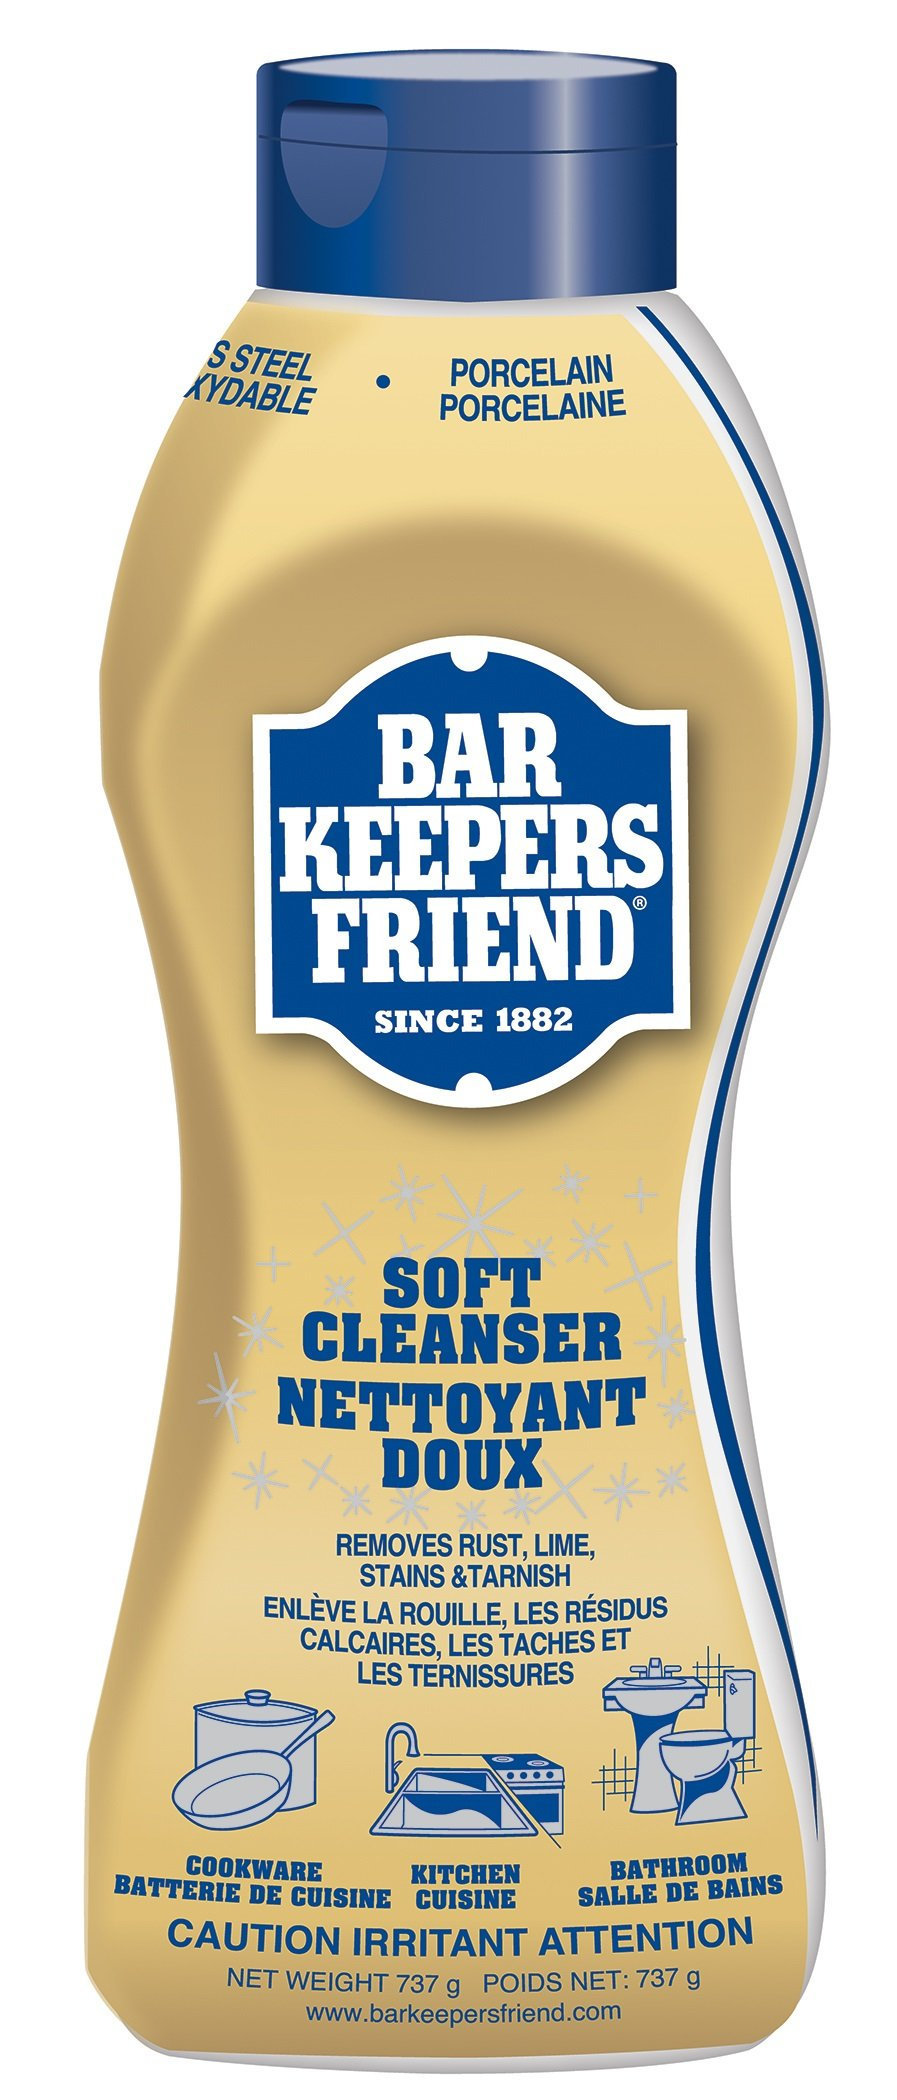 Bar Keepers Friend Soft Cleanser Liquid (25.4 oz - English/French) - Multipurpose Cleaner & Rust Stain Remover for Stainless Steel, Porcelain, Ceramic Tile, Copper, Brass, and More